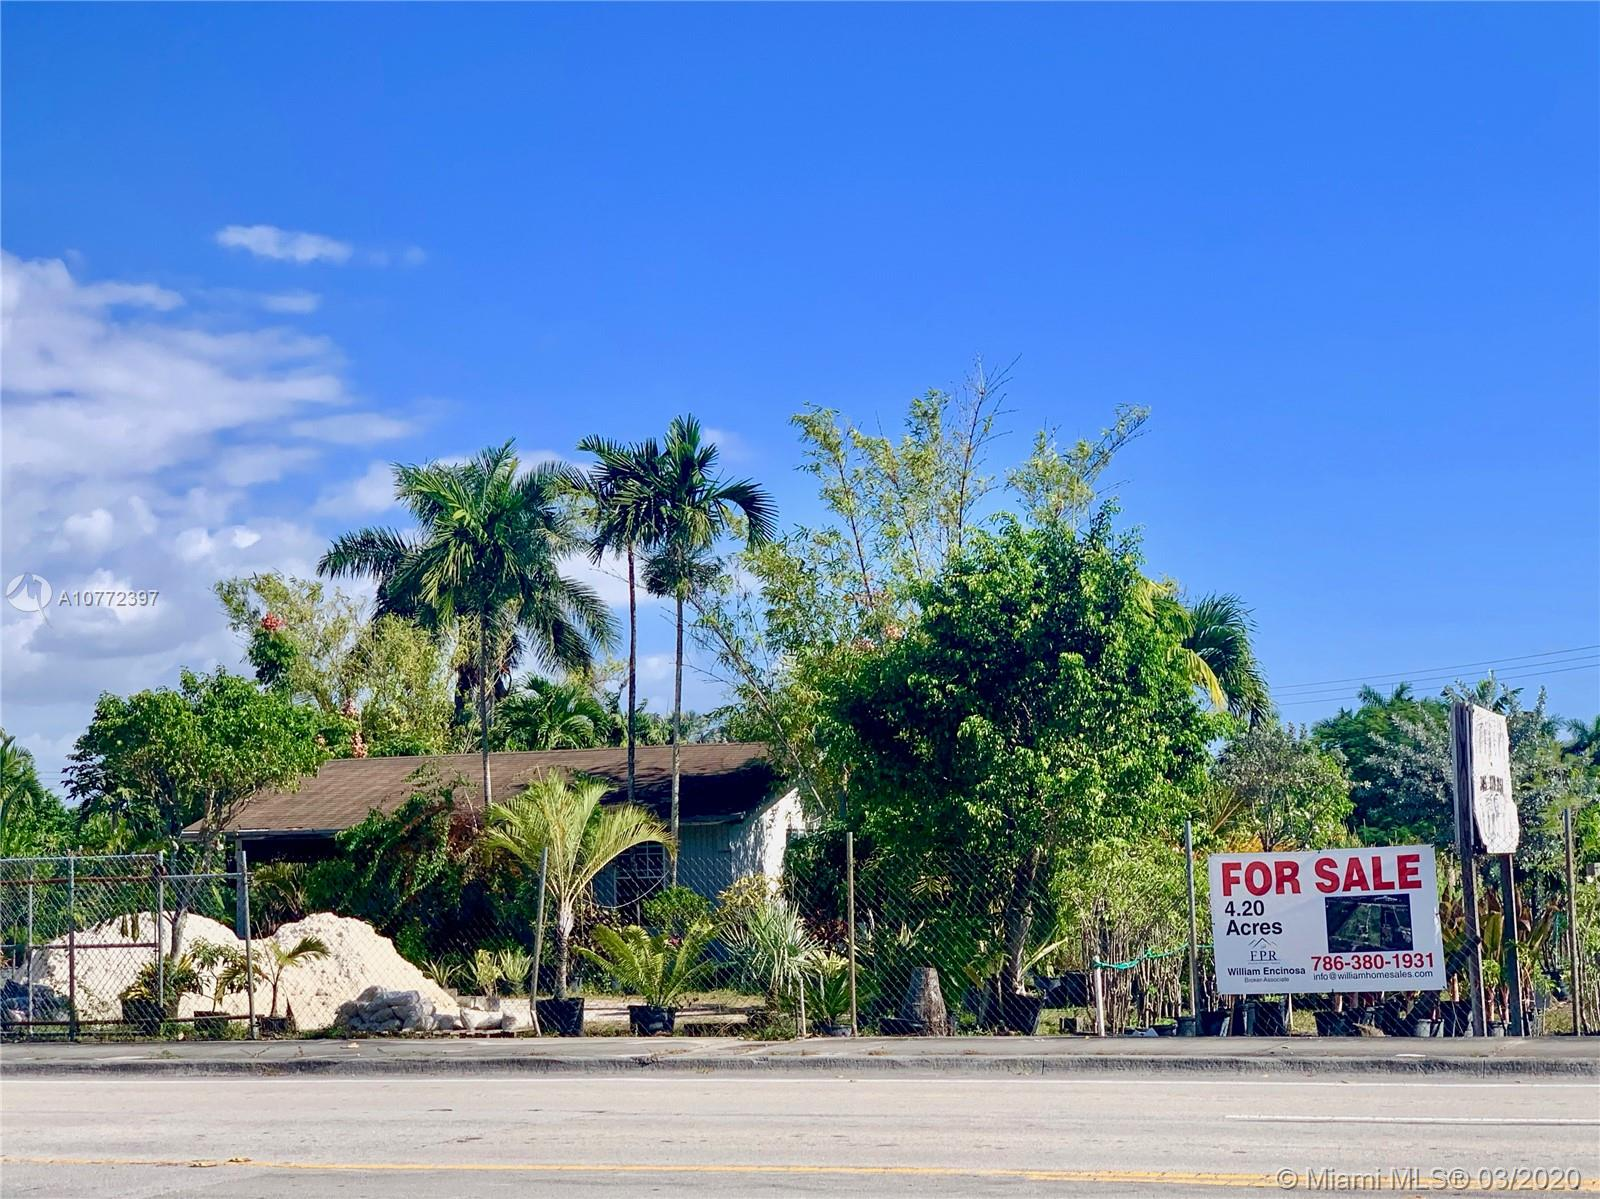 5925 SW 127th Ave, Miami, Florida 33183, 3 Bedrooms Bedrooms, ,2 BathroomsBathrooms,Residential,For Sale,5925 SW 127th Ave,A10772397